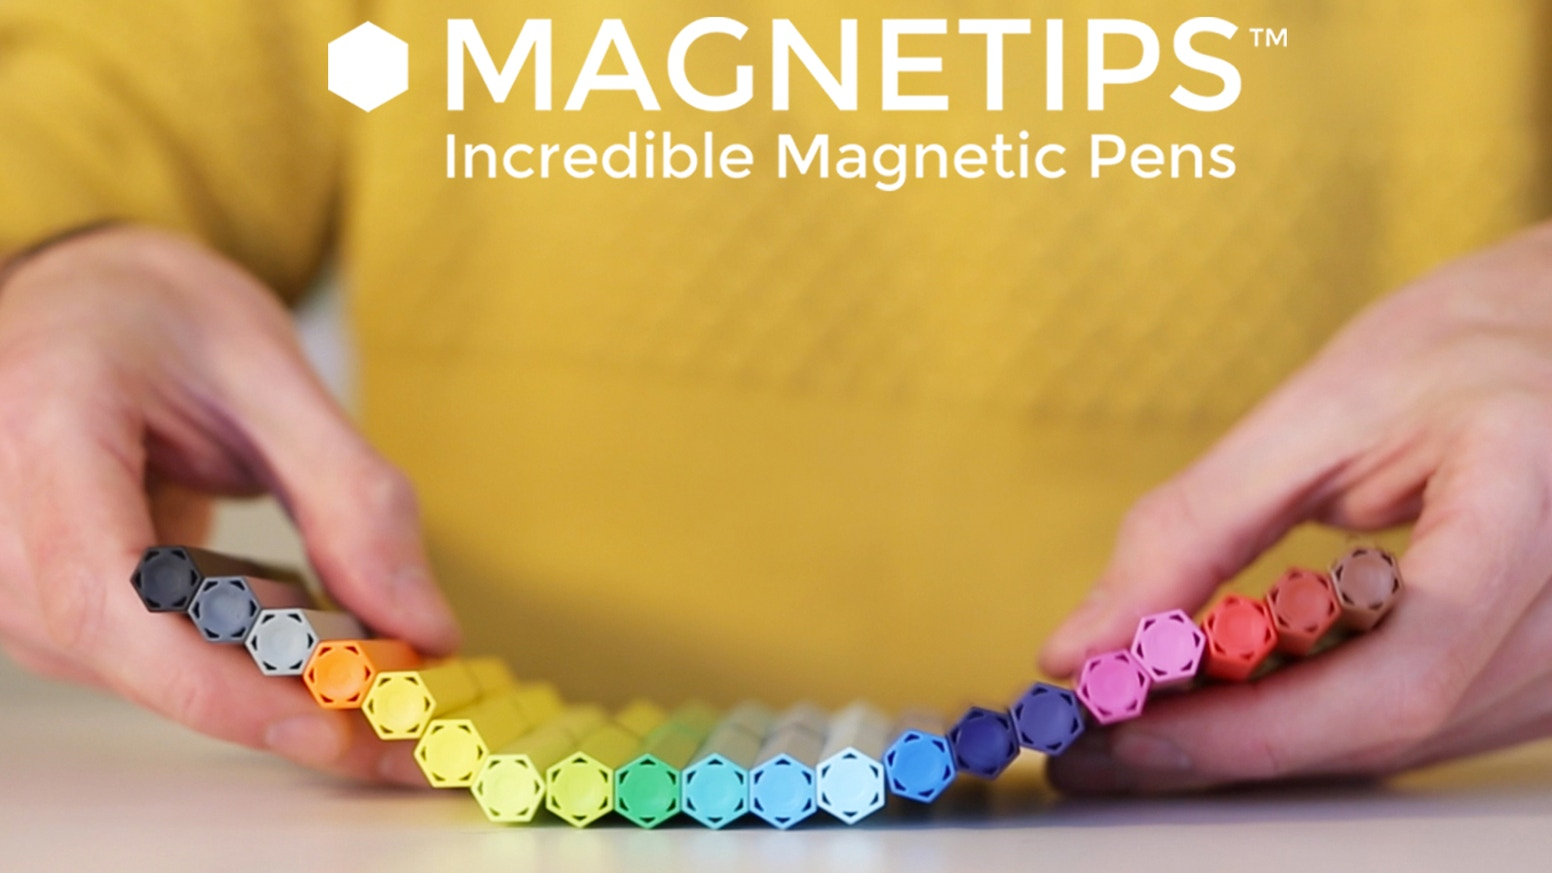 Refillable fineliners combined with super strong Neodymium magnets. Colouring is just the beginning!